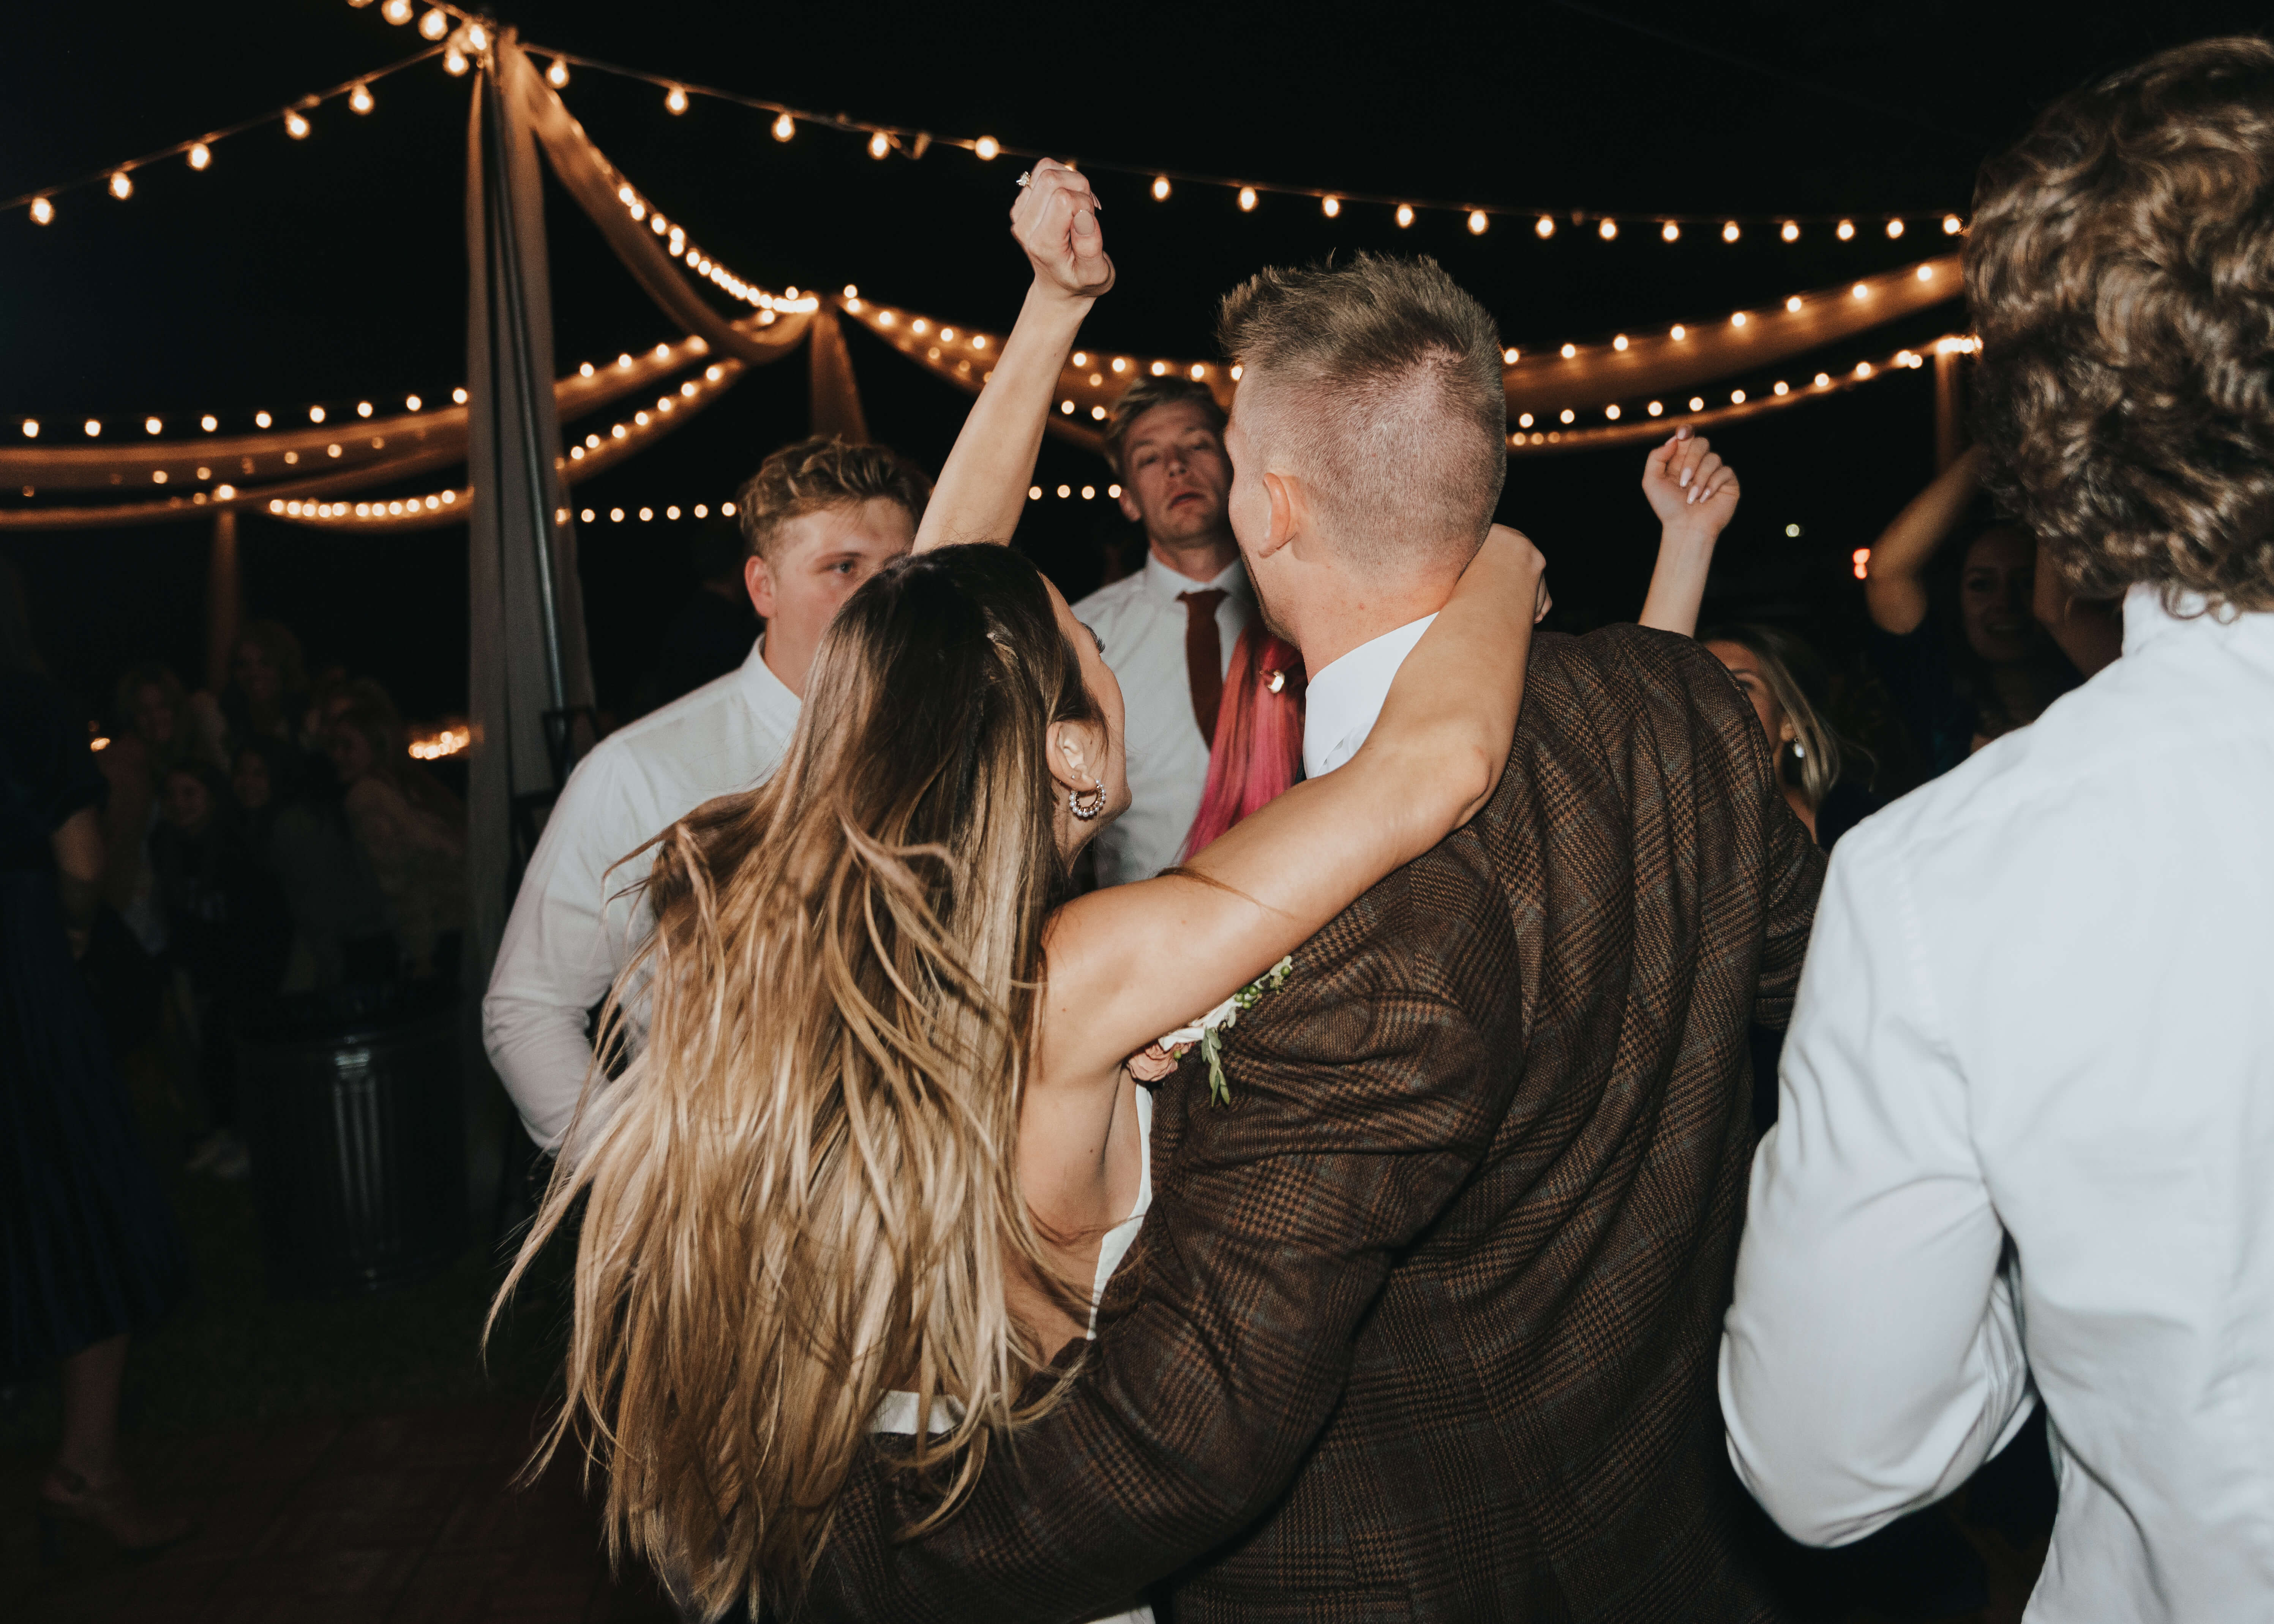 cute candid dancing photo of bride and groom with flash photography